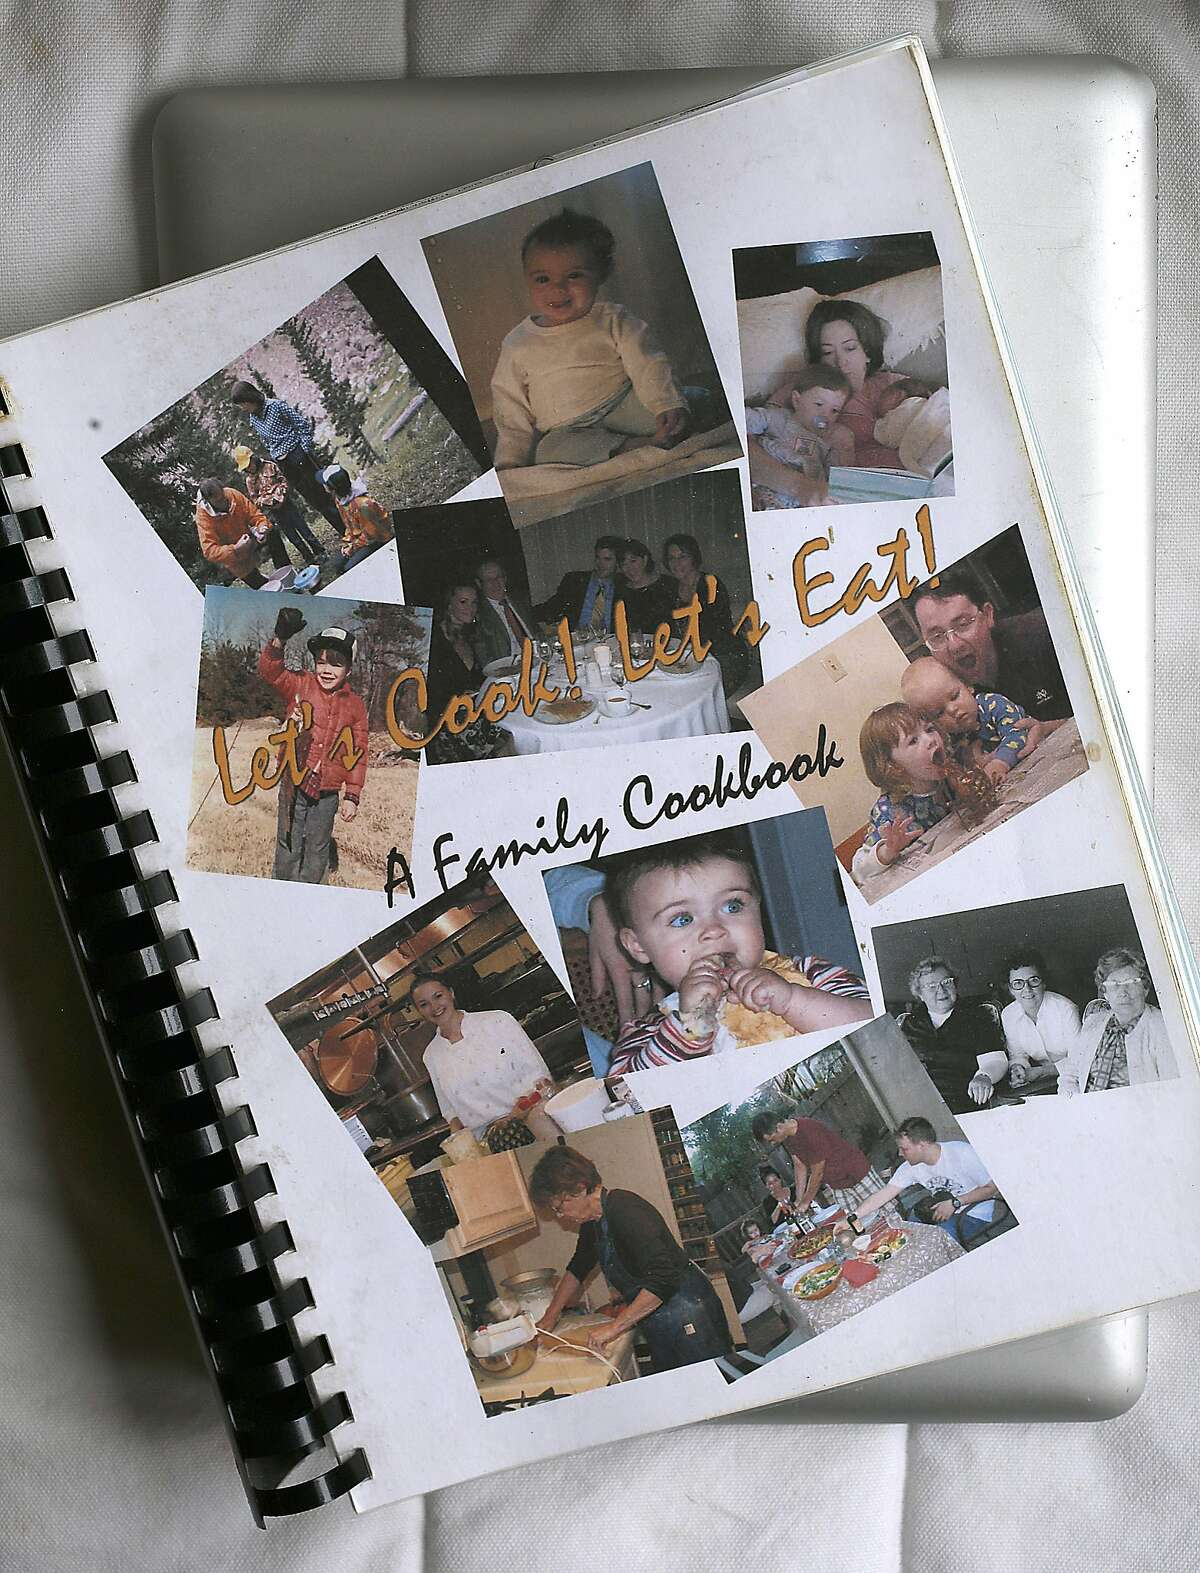 Sarah Rich's family cookbook seen at home in San Francisco, California, on thursday, may 12, 2016.